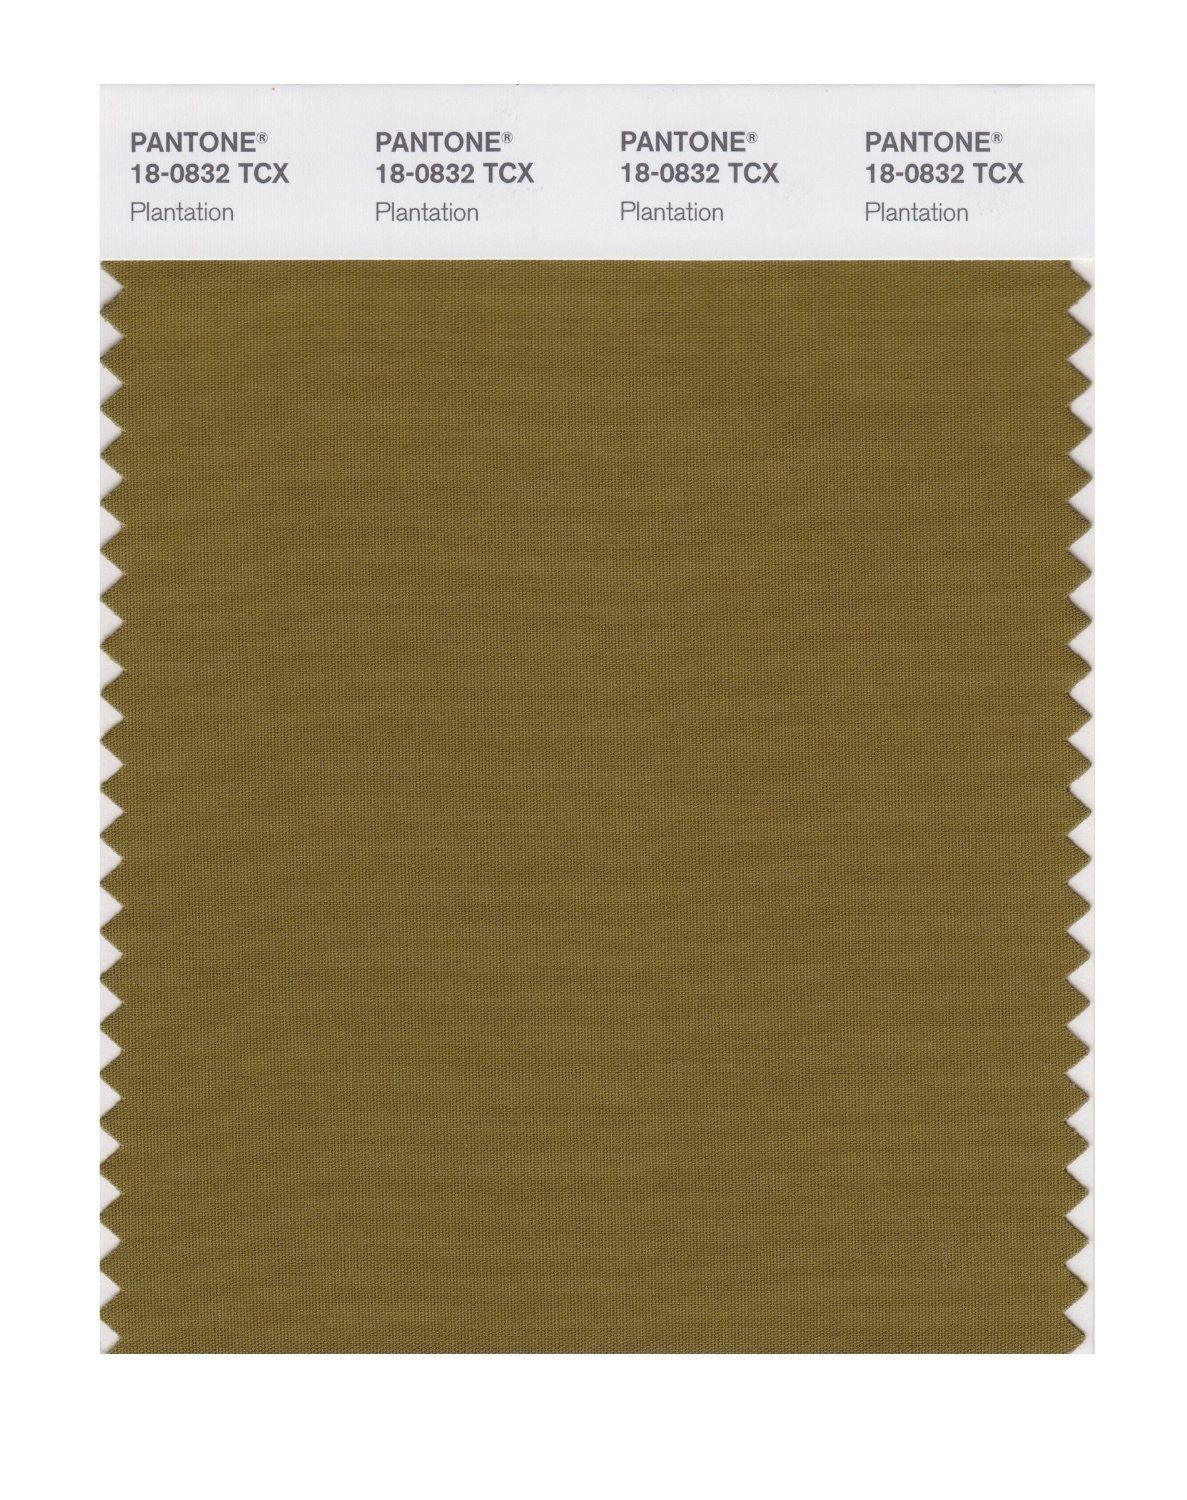 Pantone 18-0832 TCX Swatch Card Plantation